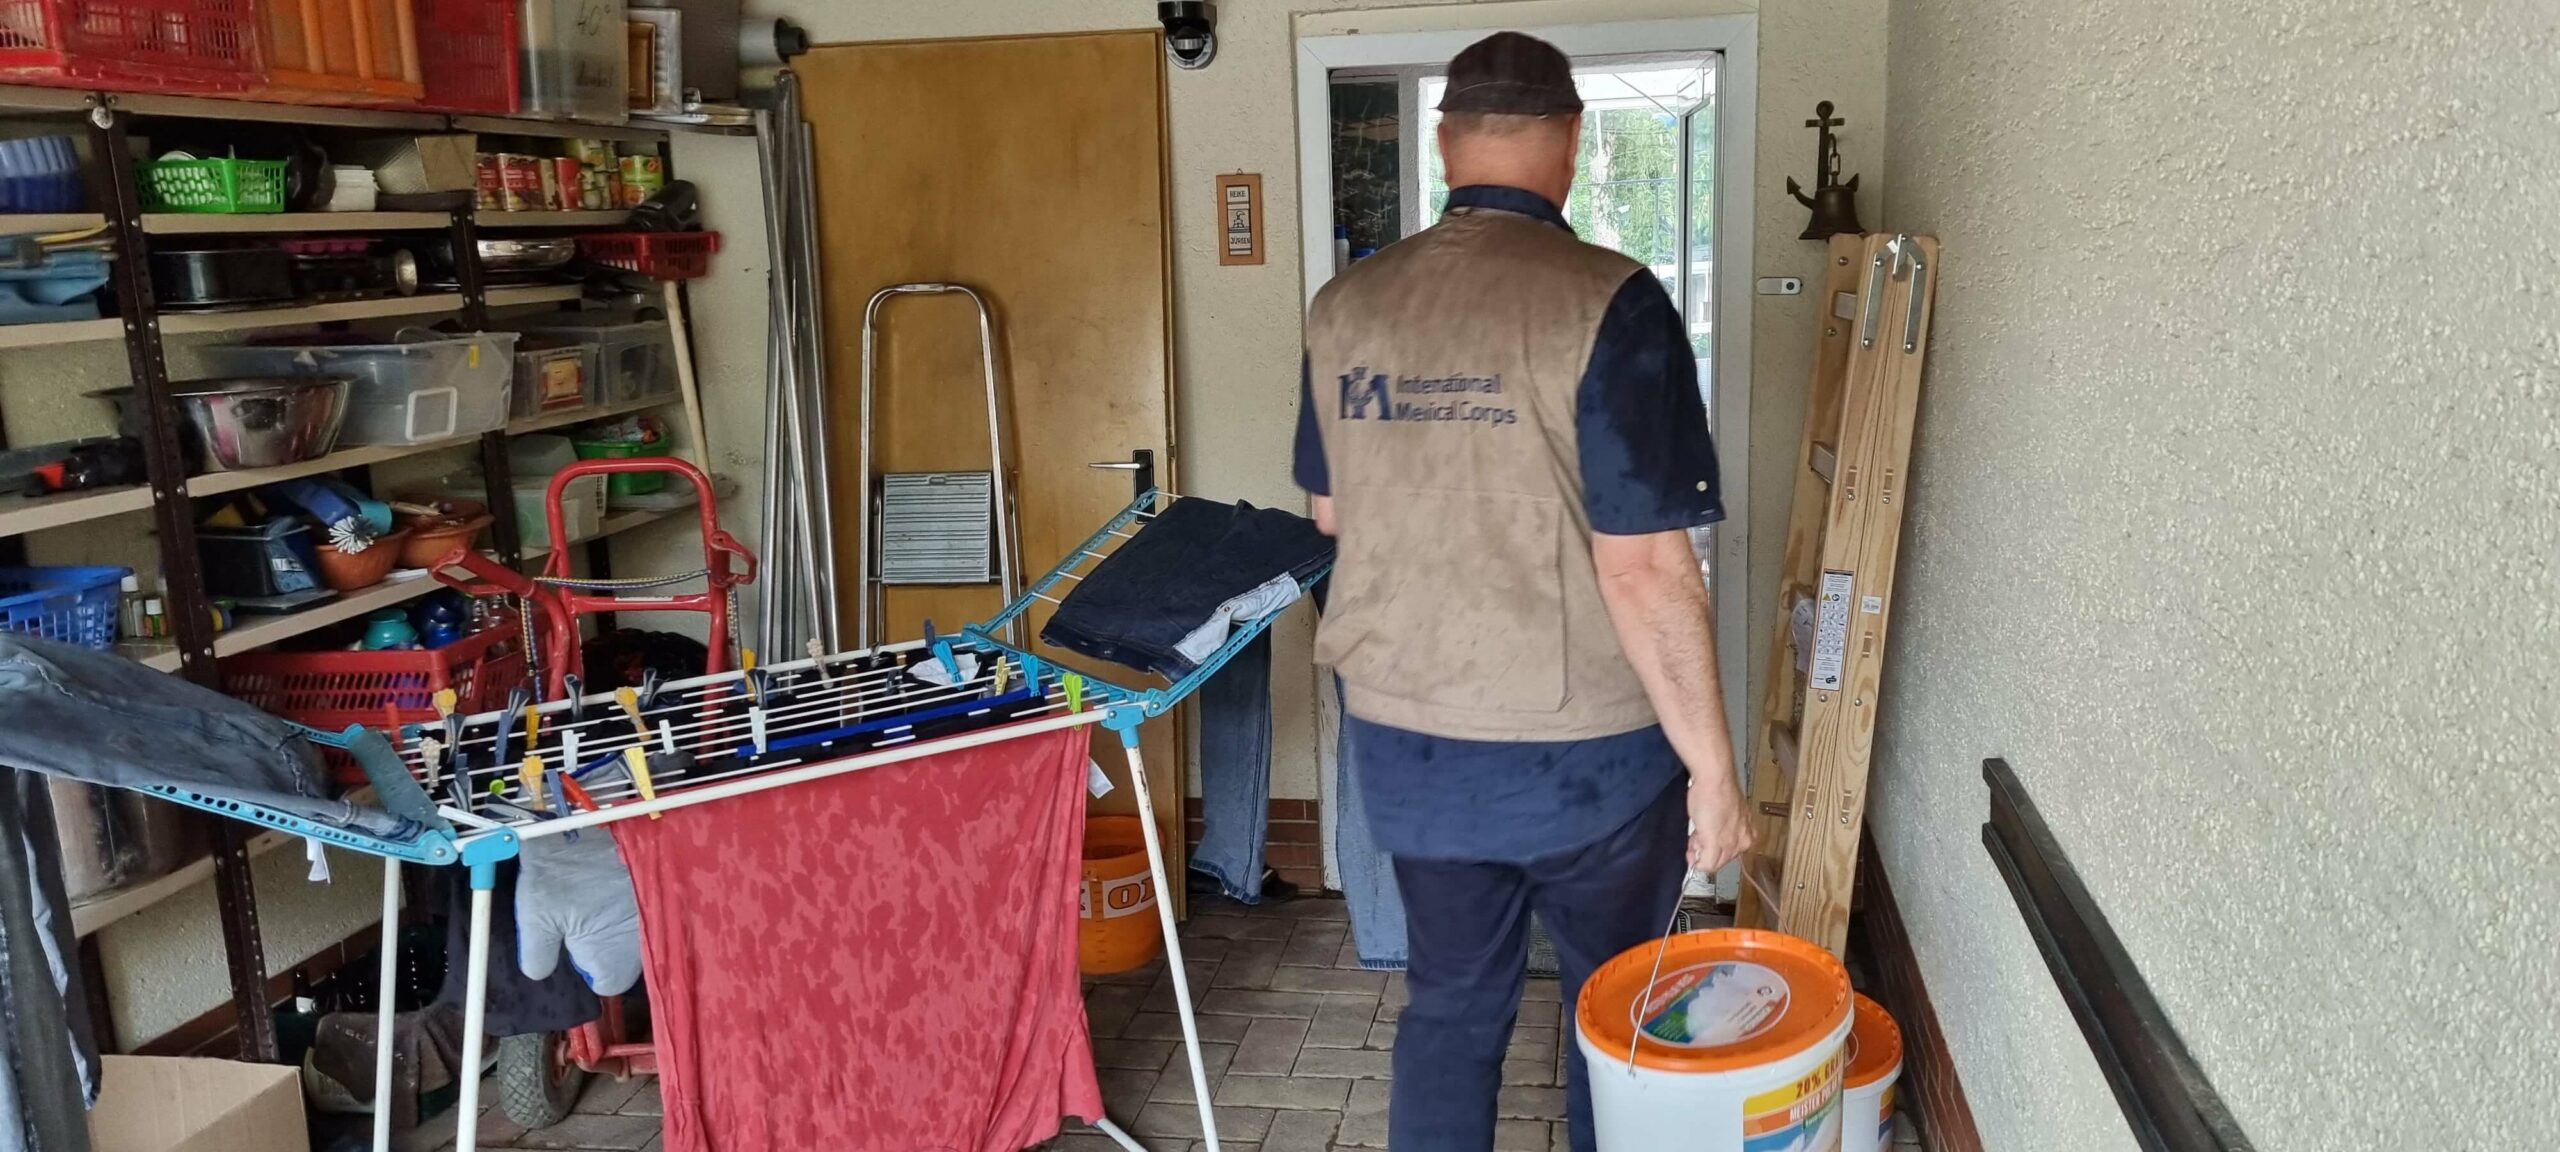 Delivering cleaning and clearing supplies, equipment and new paint to damaged house in Bad Bodendorf.